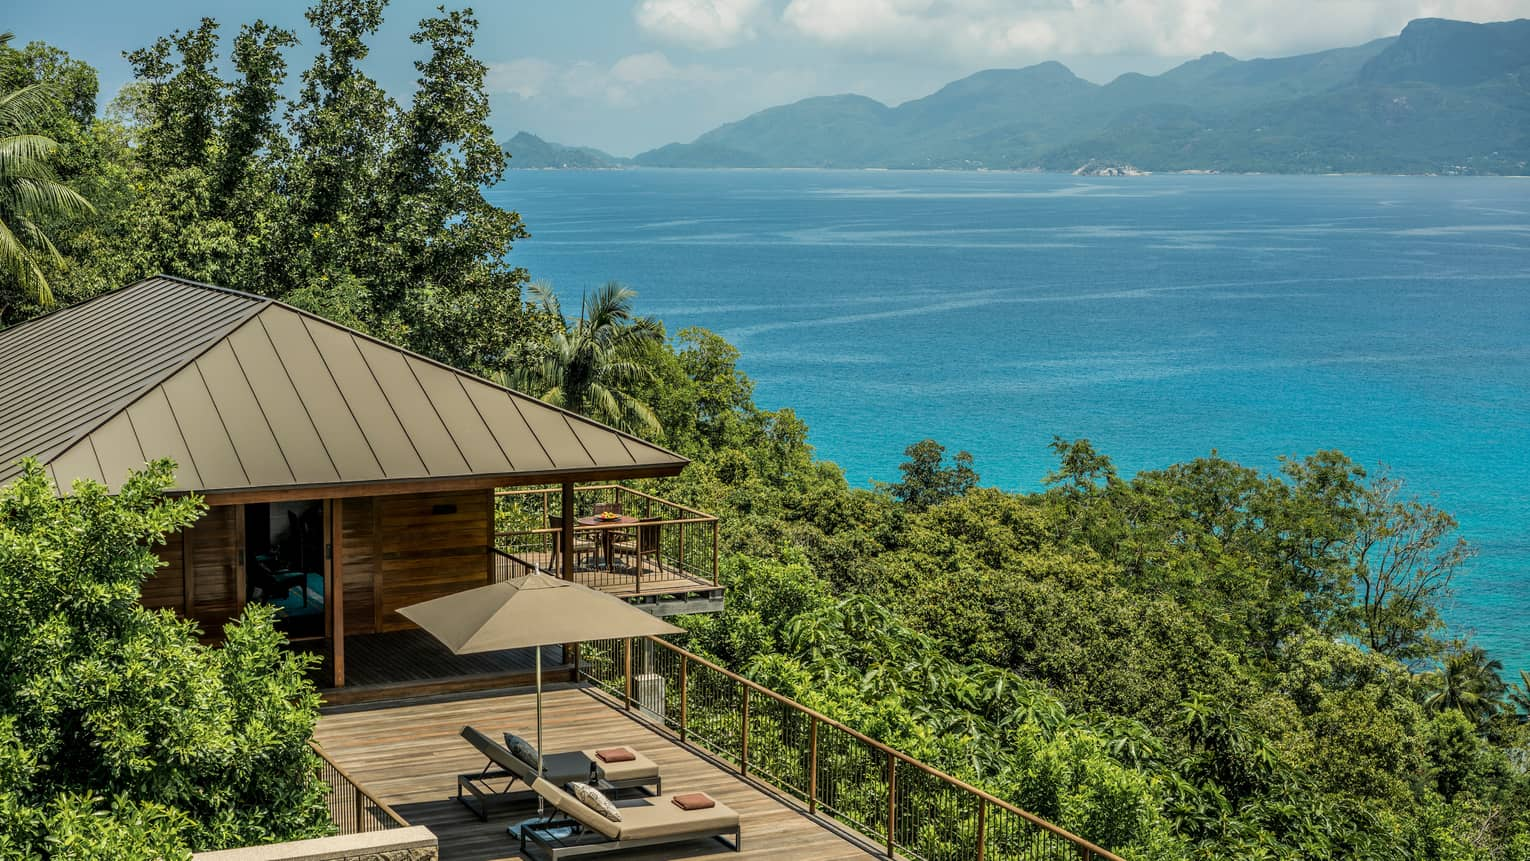 View over wood patio, villa roof on green mountain slope, blue ocean in background